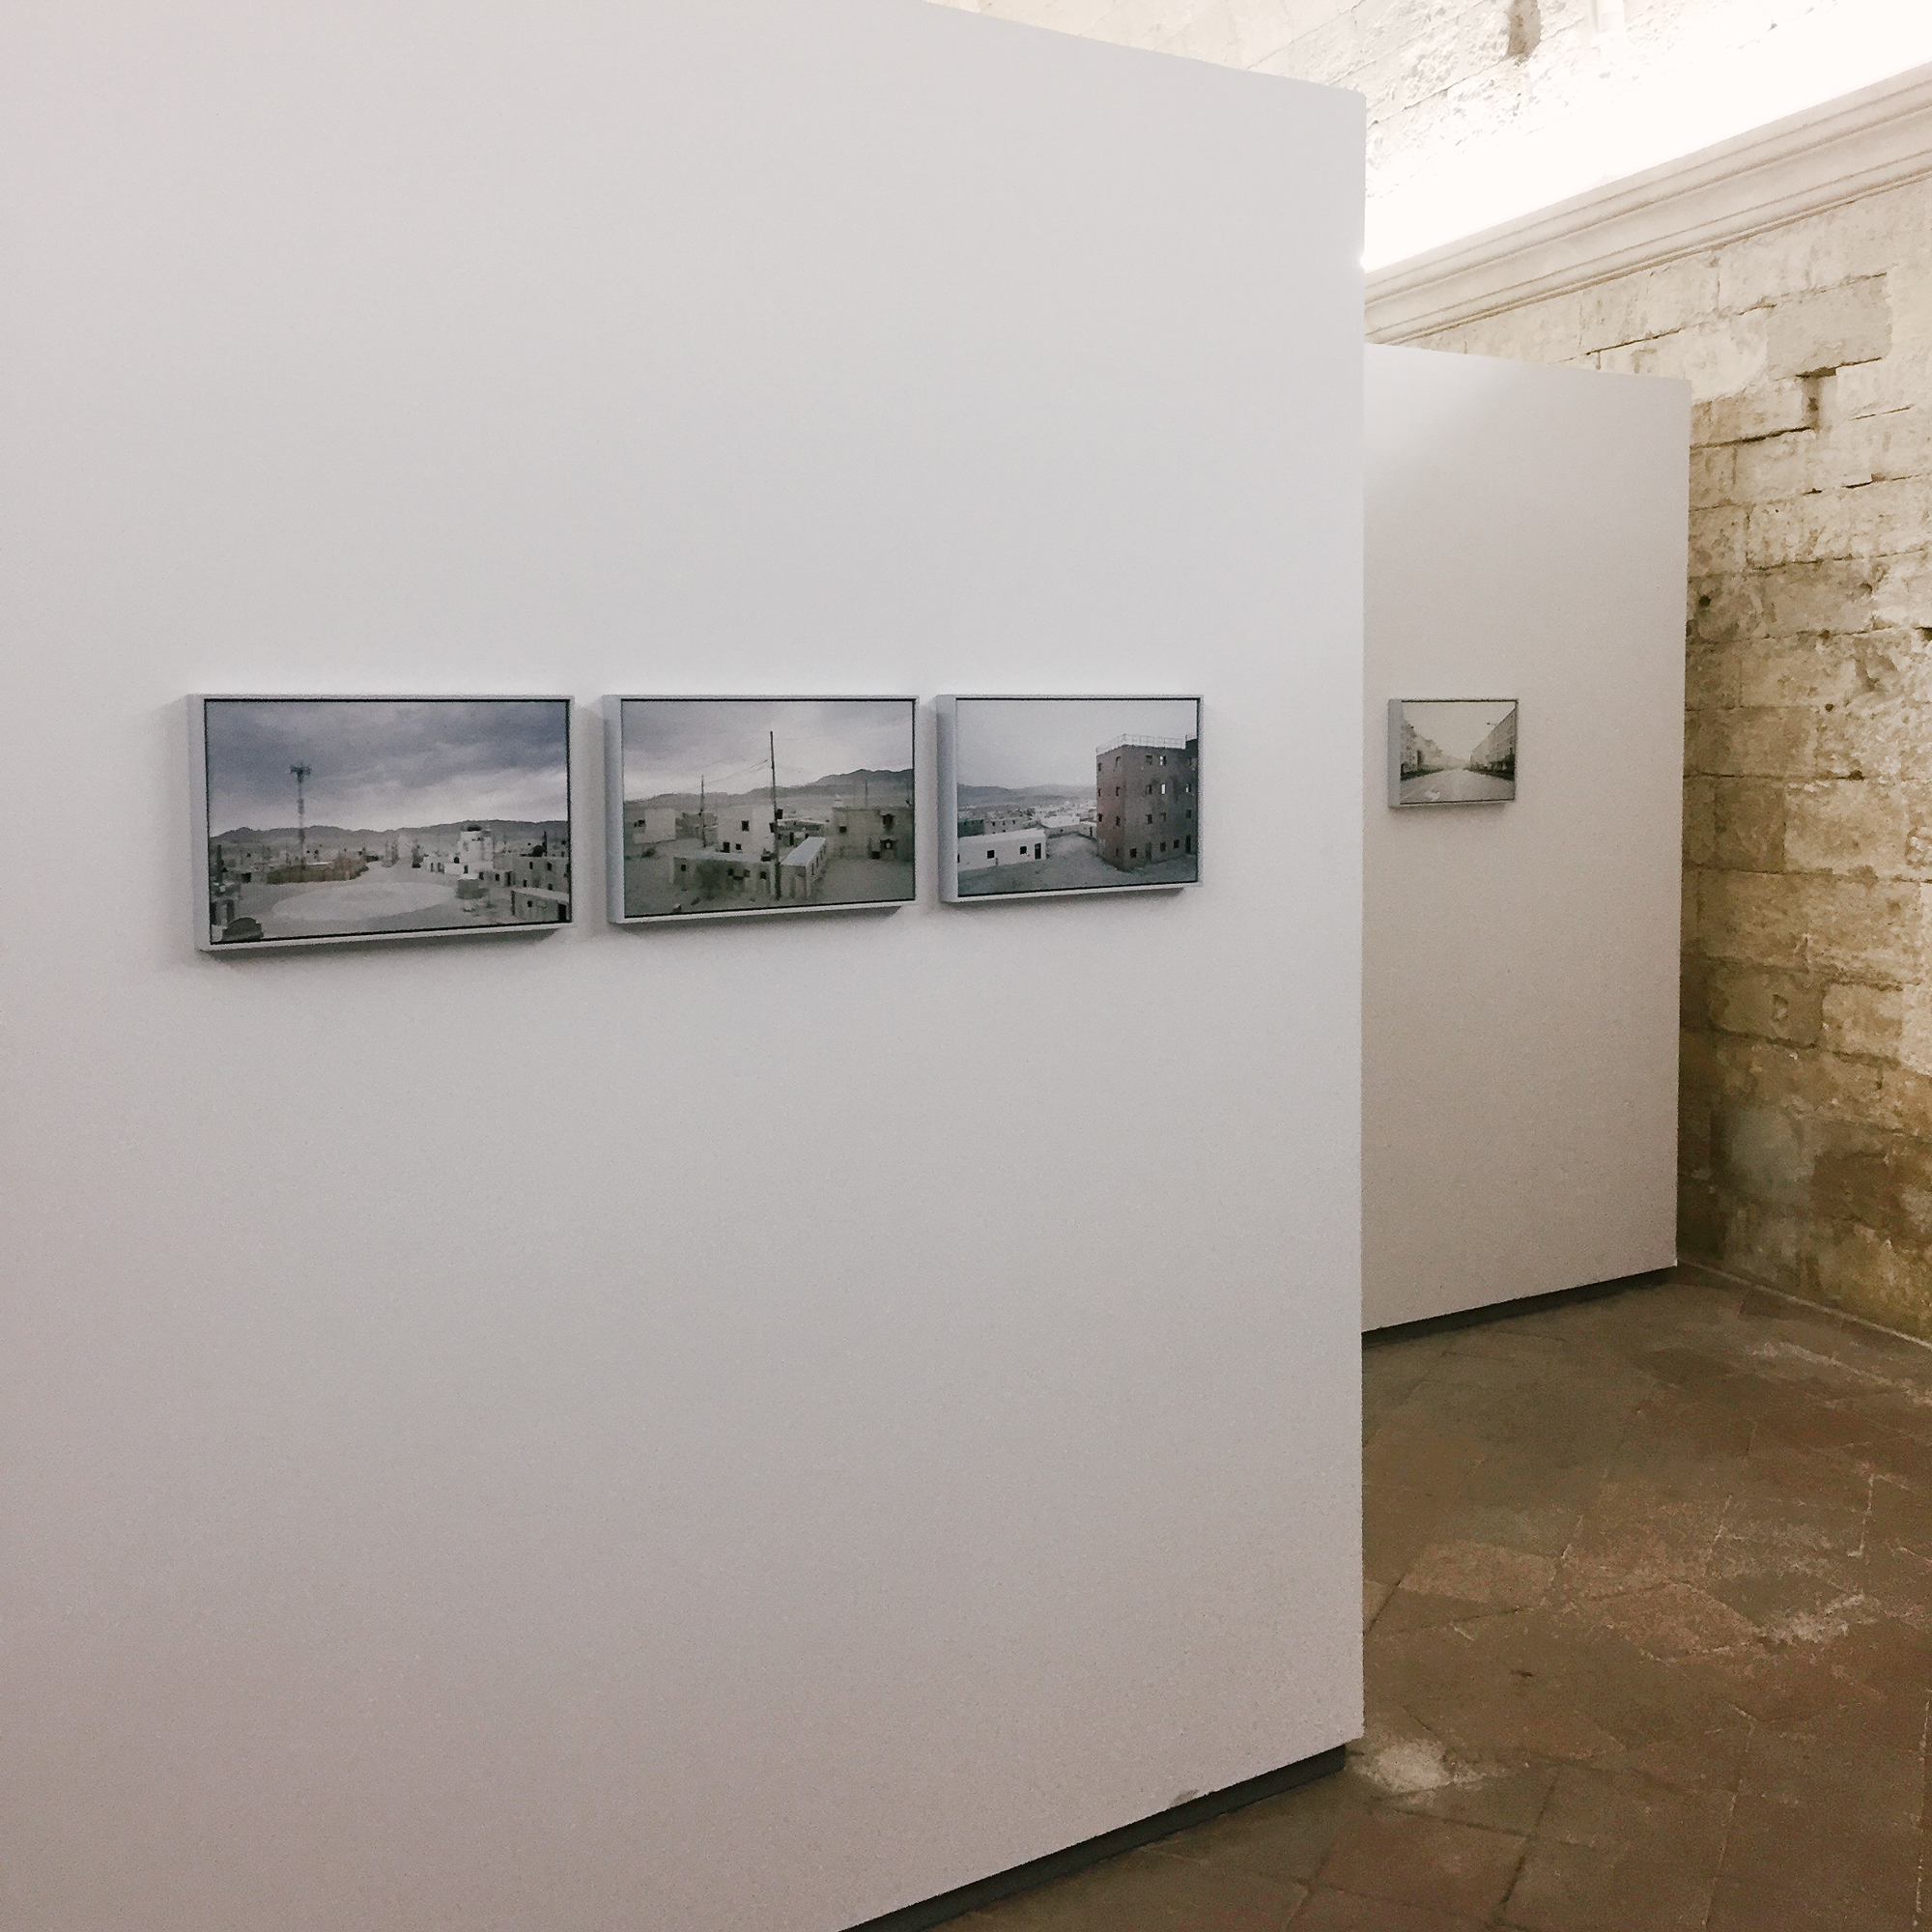 arles2018_thephotoexhibitionarchive_GREGOR SAILER-3